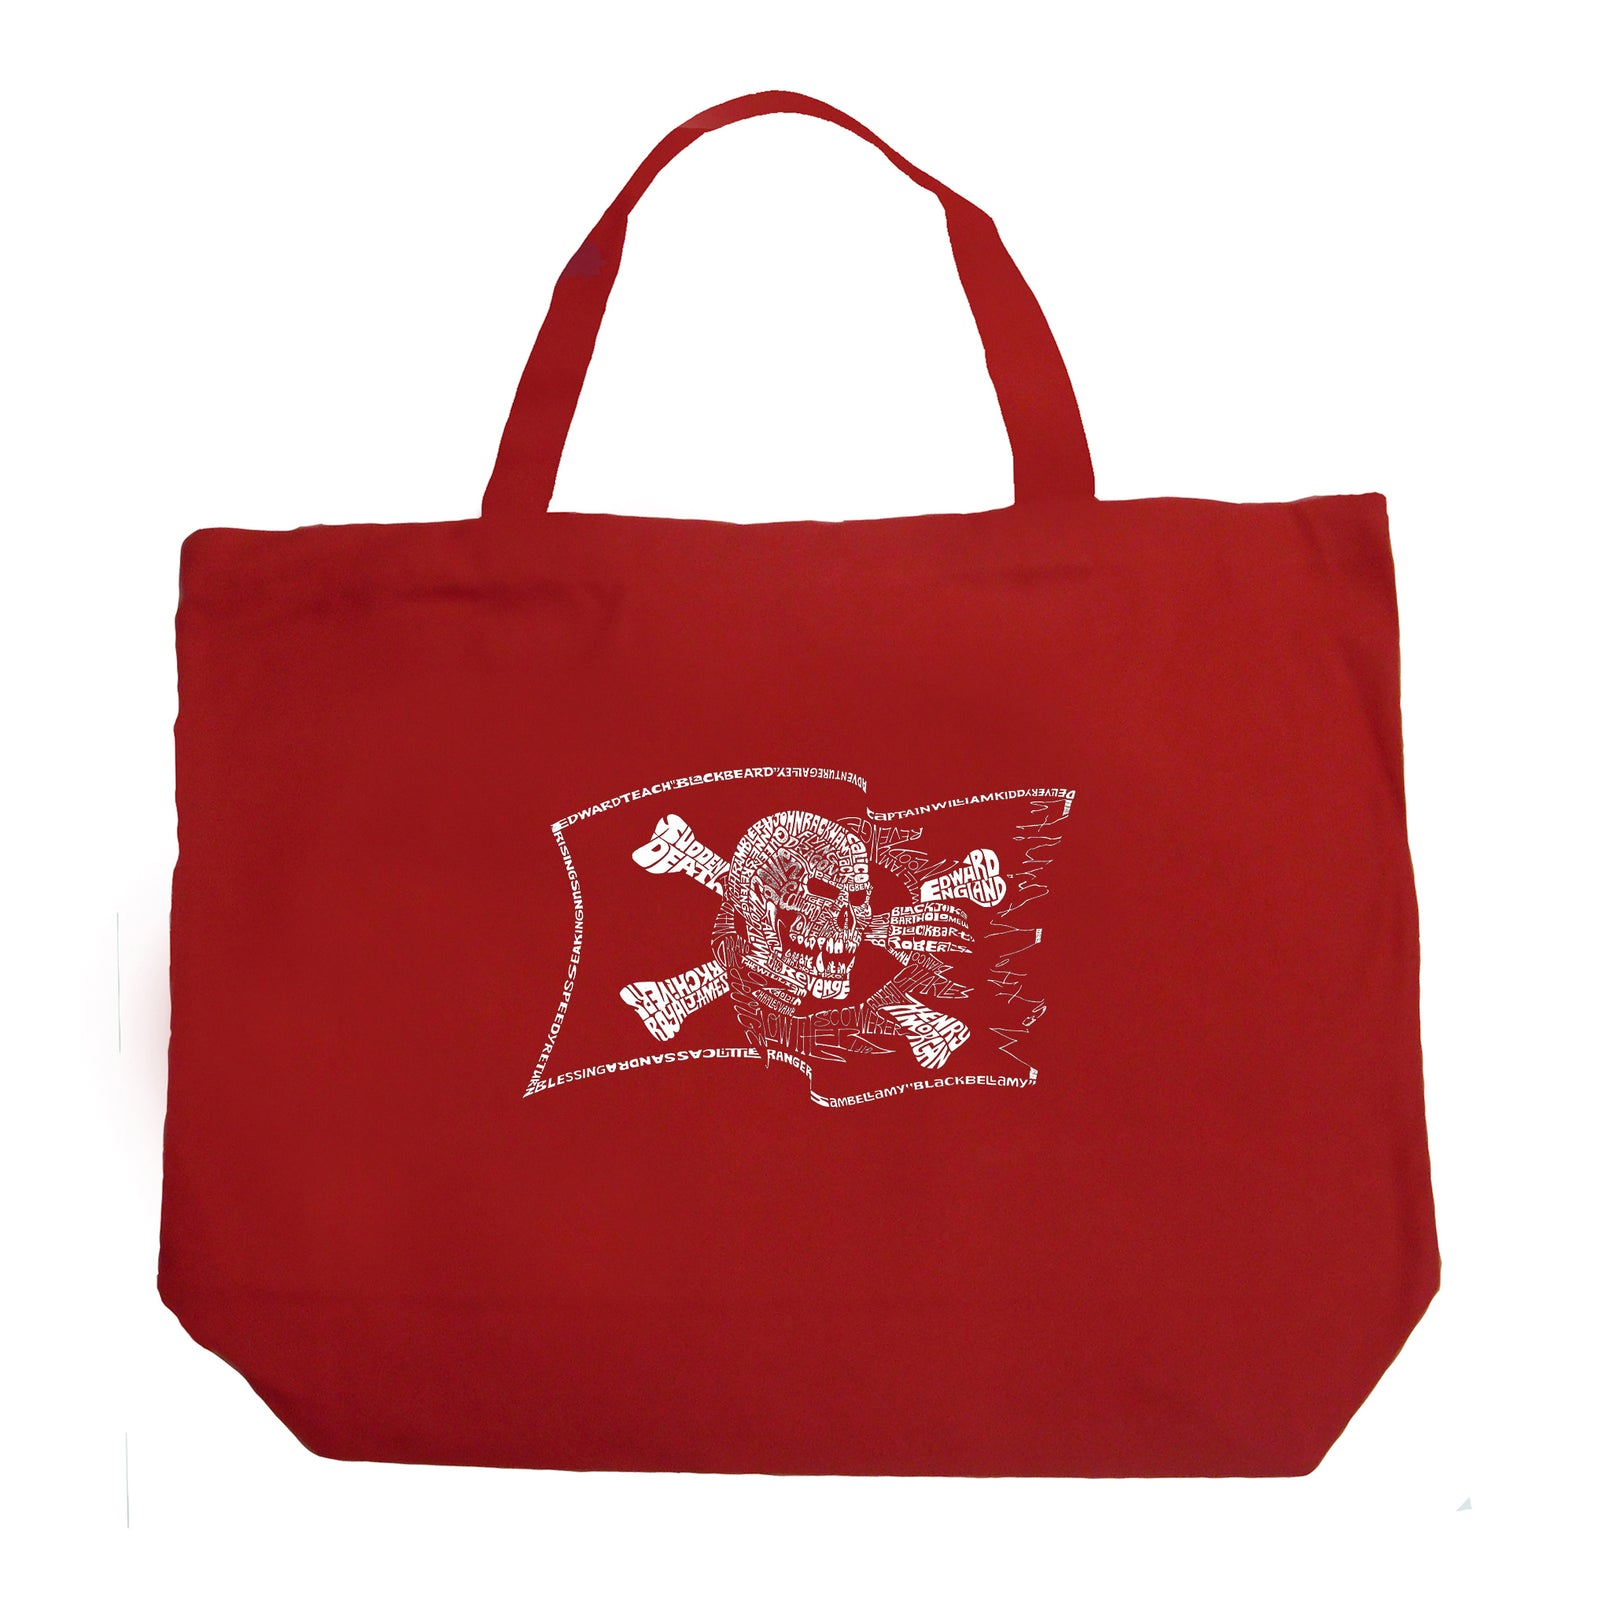 Large Tote Bag - FAMOUS PIRATE CAPTAINS AND SHIPS